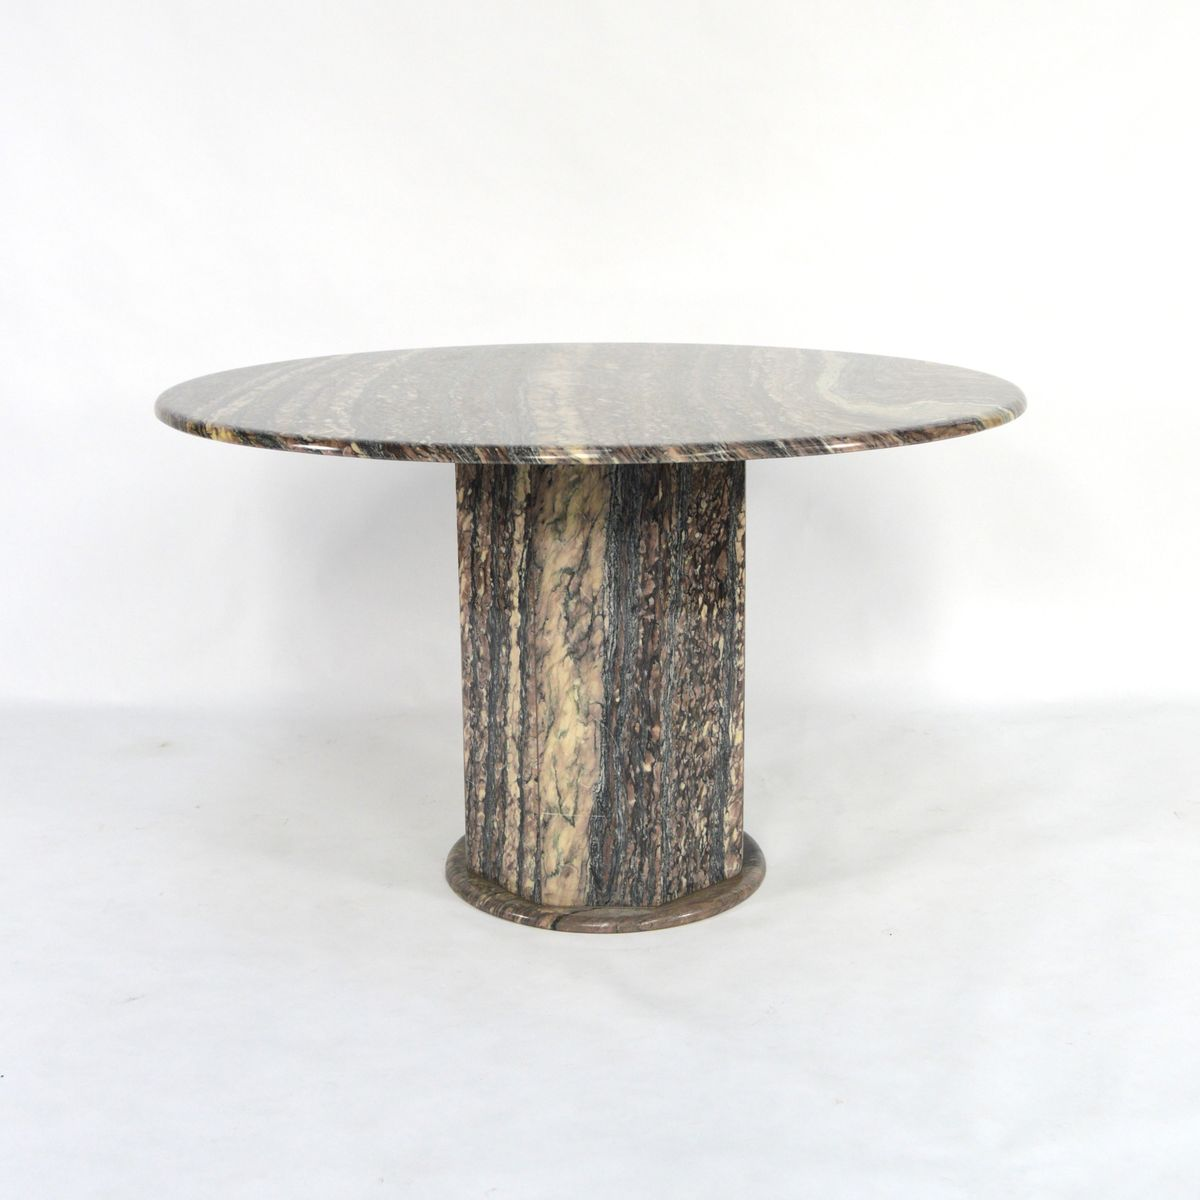 Italian Marble Dining Table 1970s for sale at Pamono : italian marble dining table 1970s 1 from www.pamono.com size 1200 x 1200 jpeg 62kB